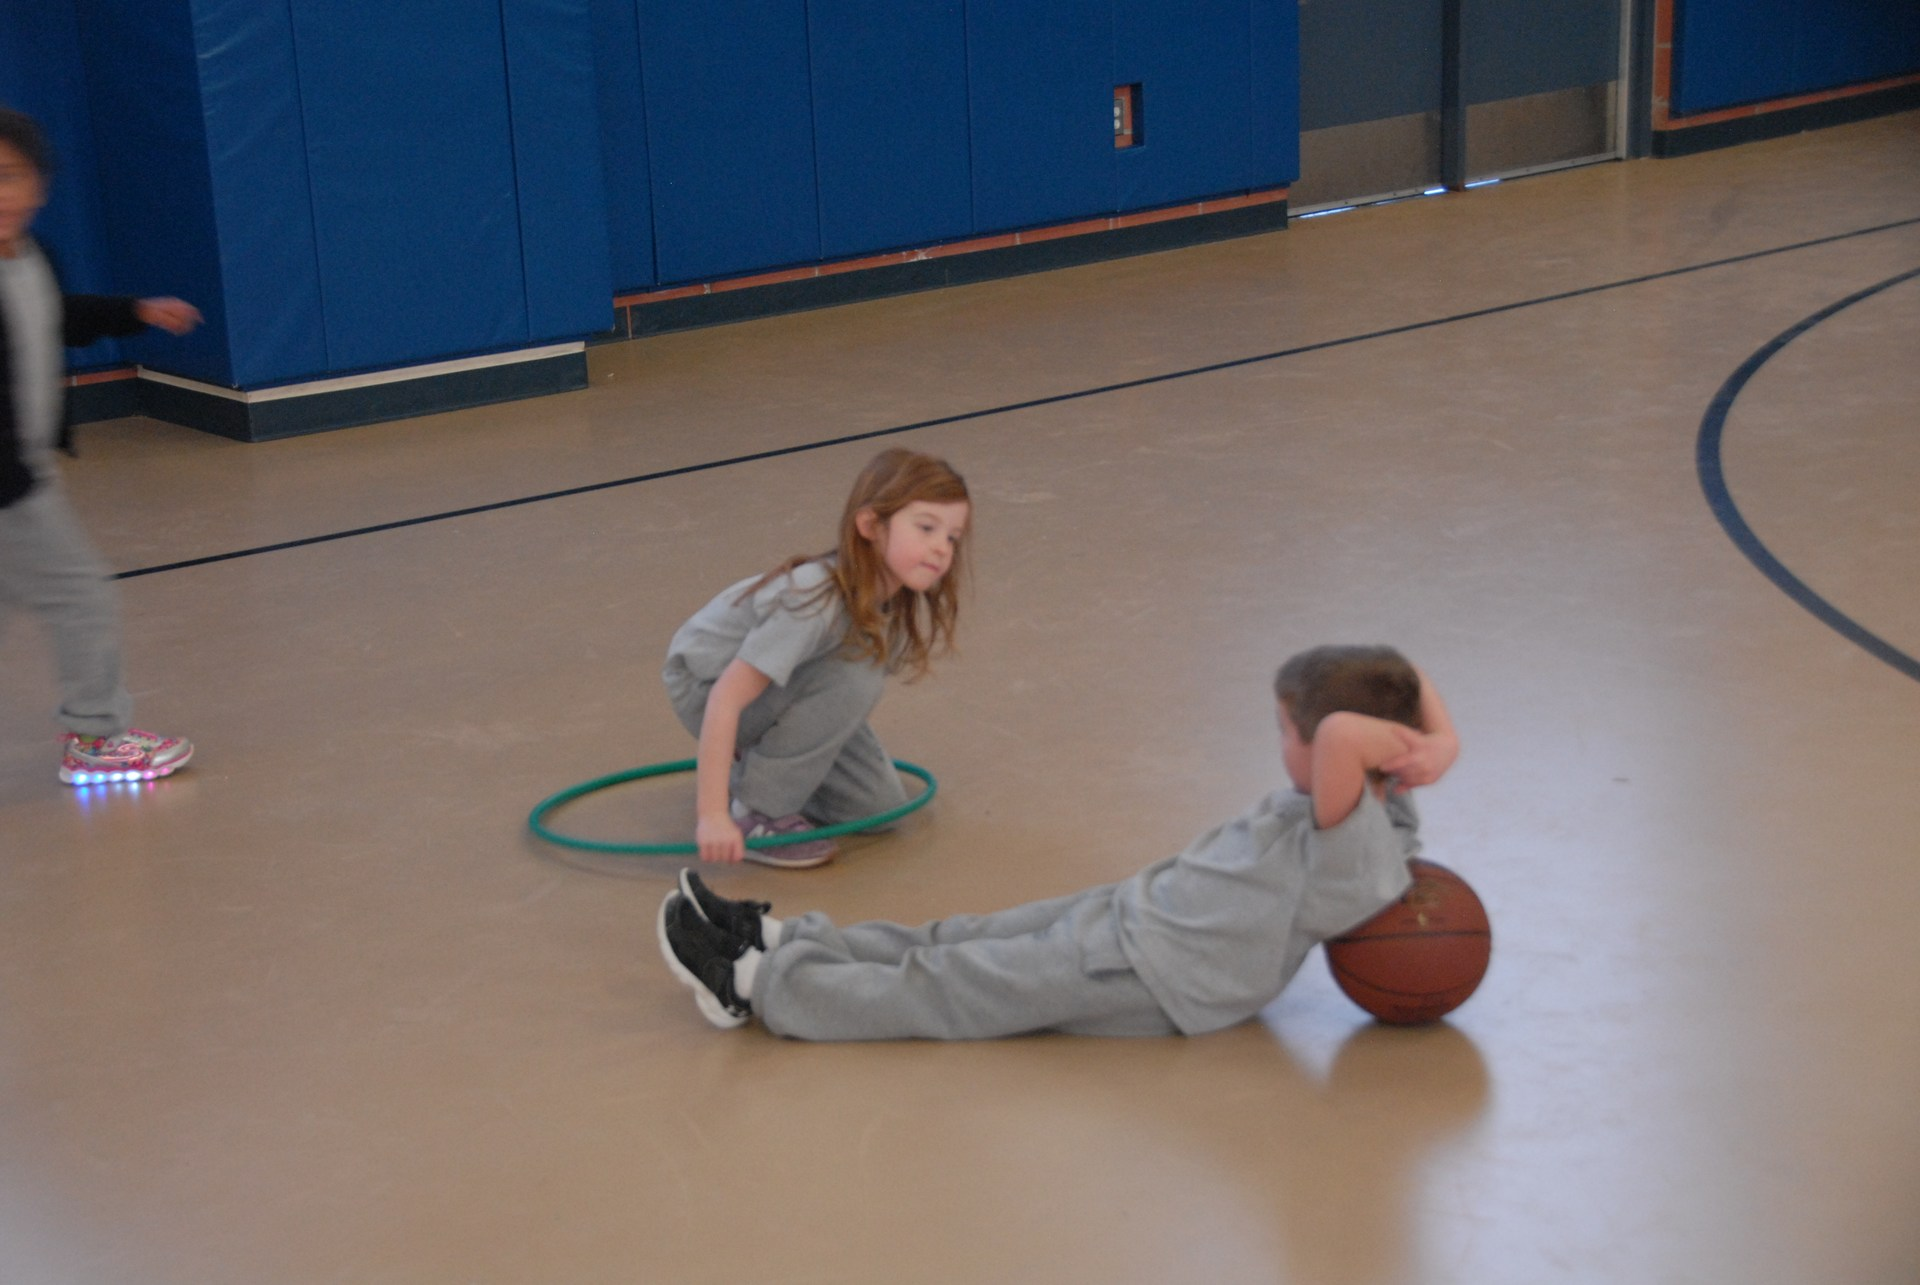 Two students talk during gym class